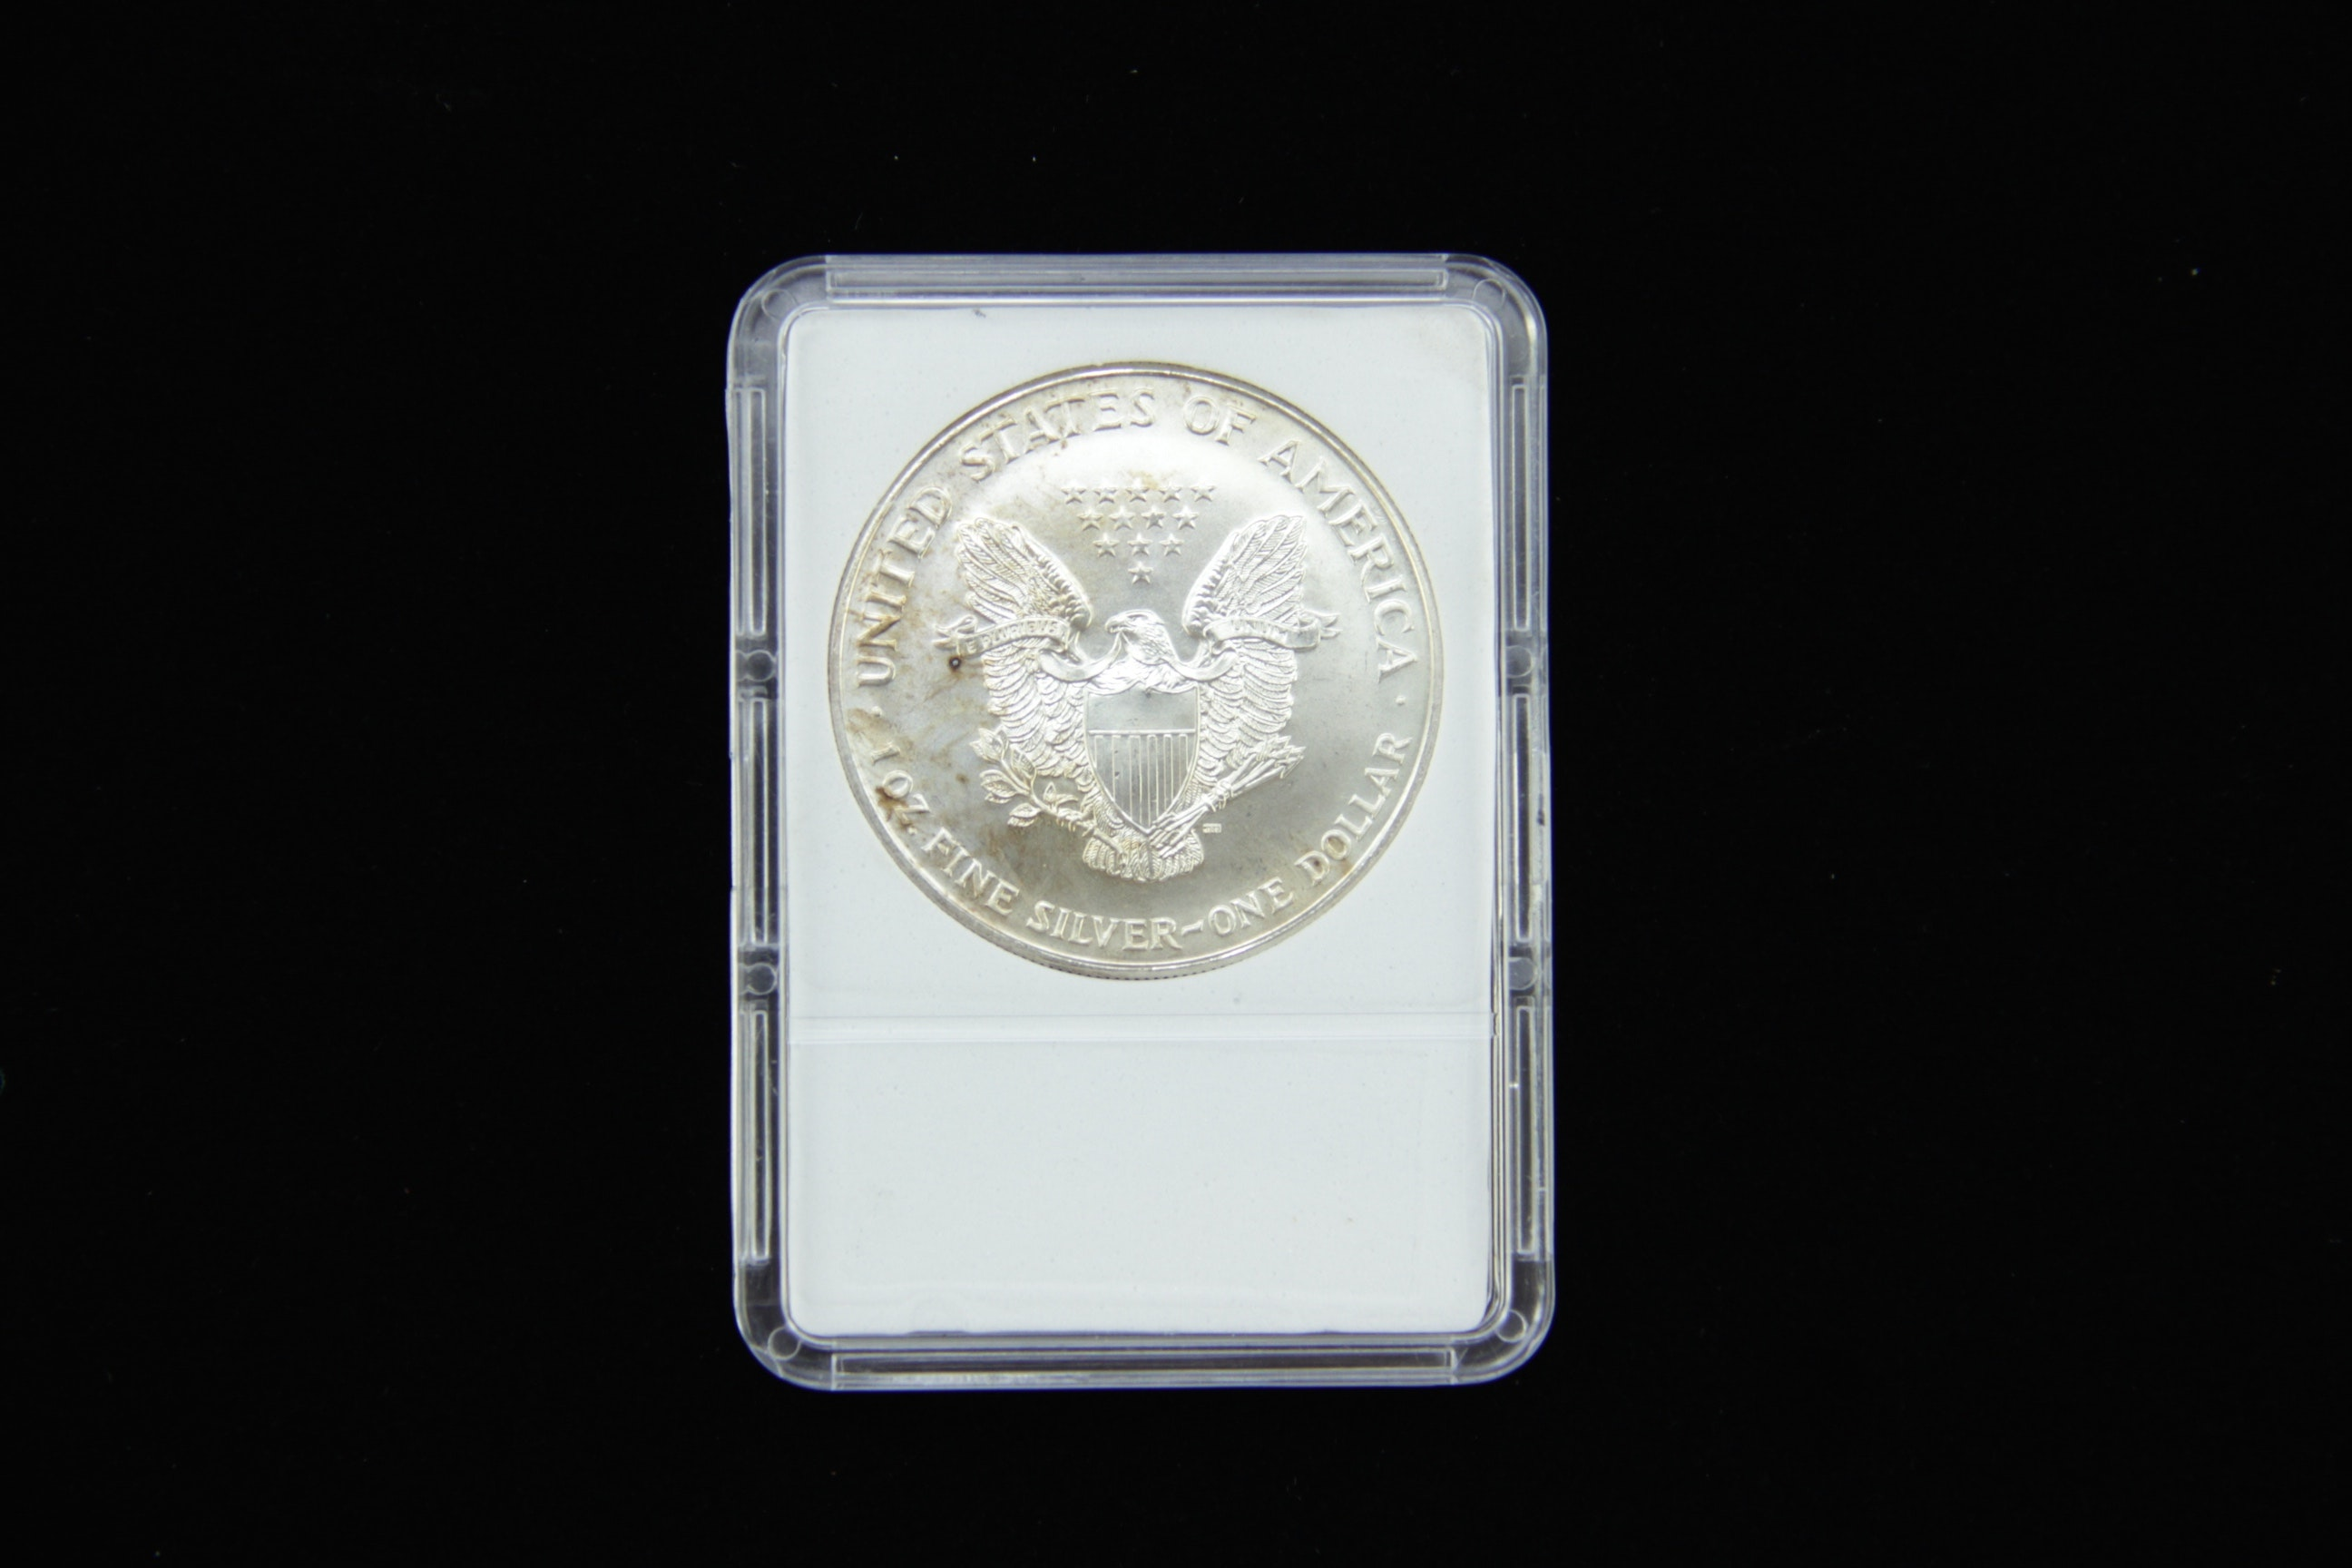 1 Troy Ounce American Silver Eagle Coin Value